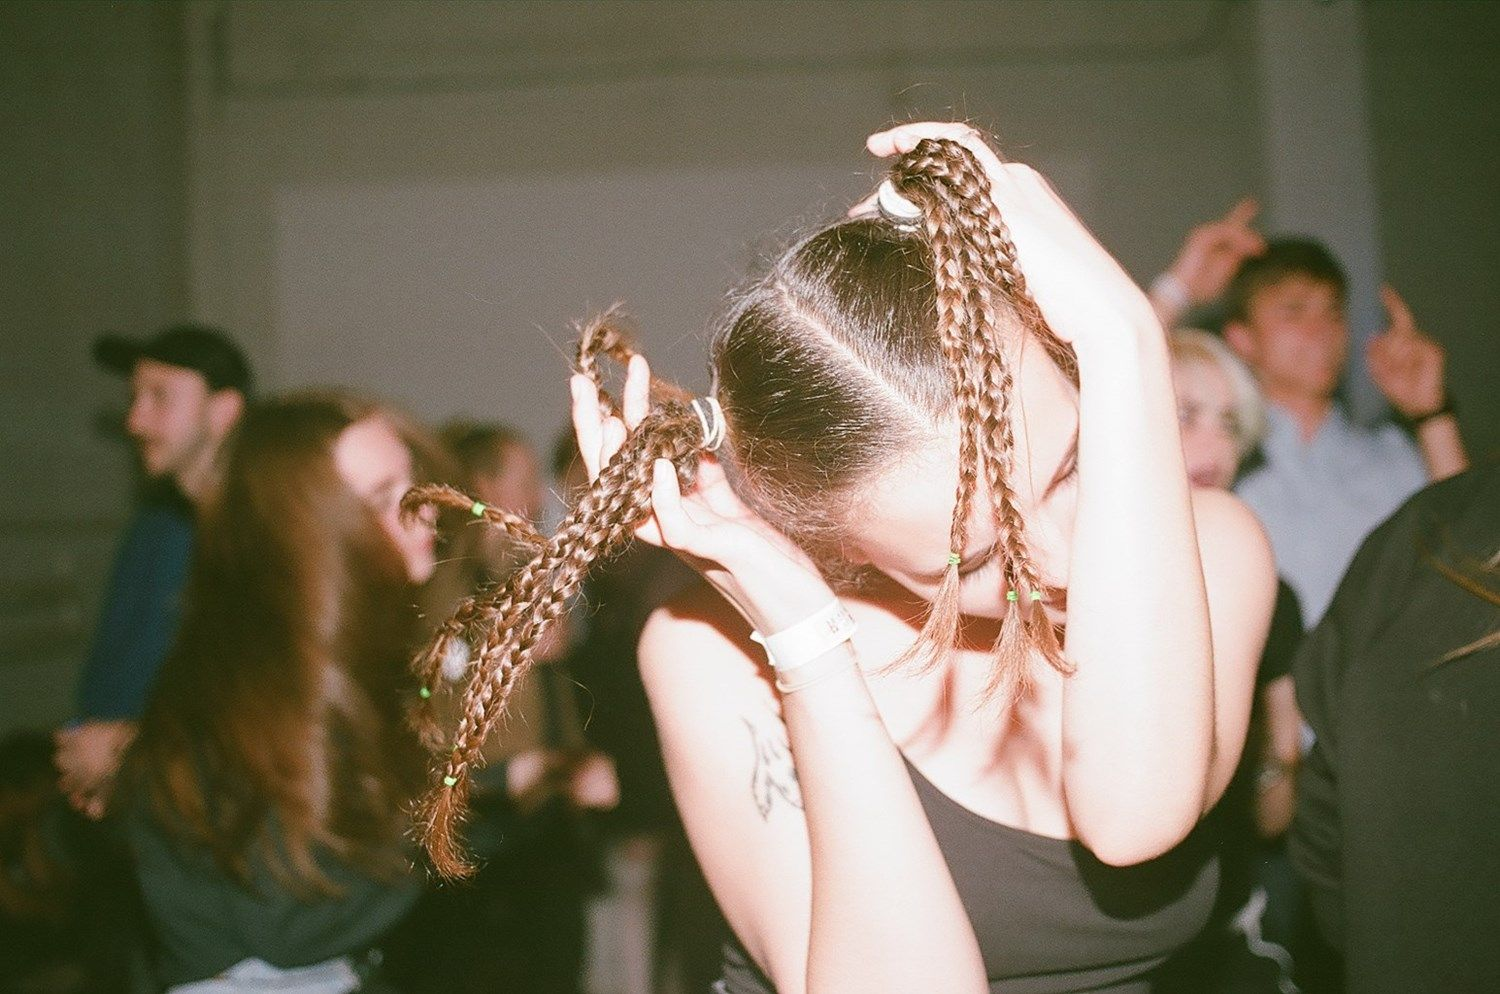 Documenting a rising new rave scene in Moscow   Dazed